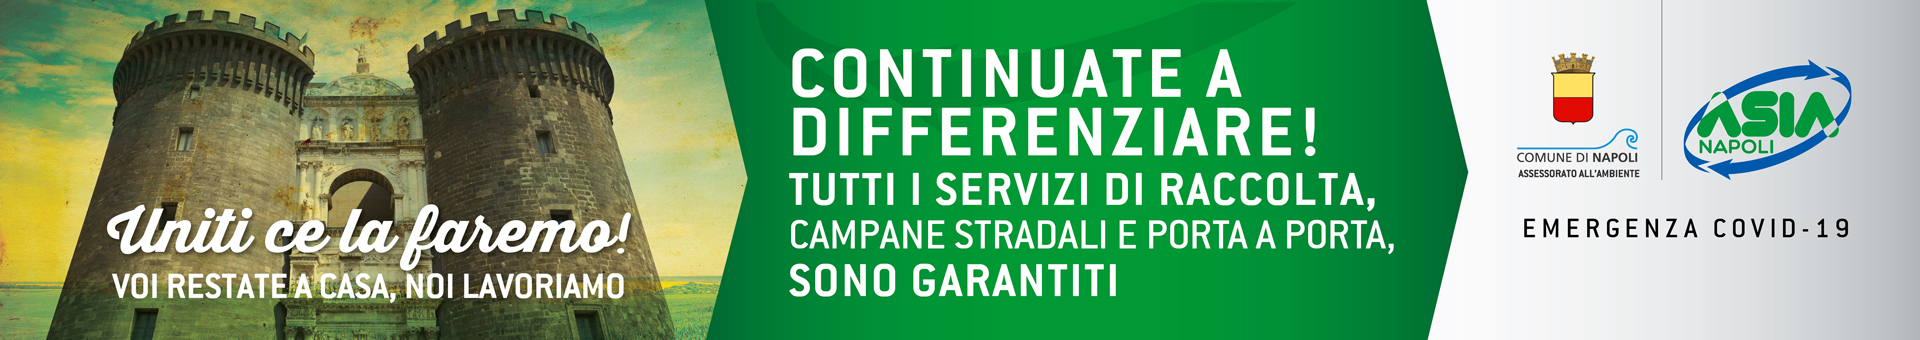 Continuate a differenziare